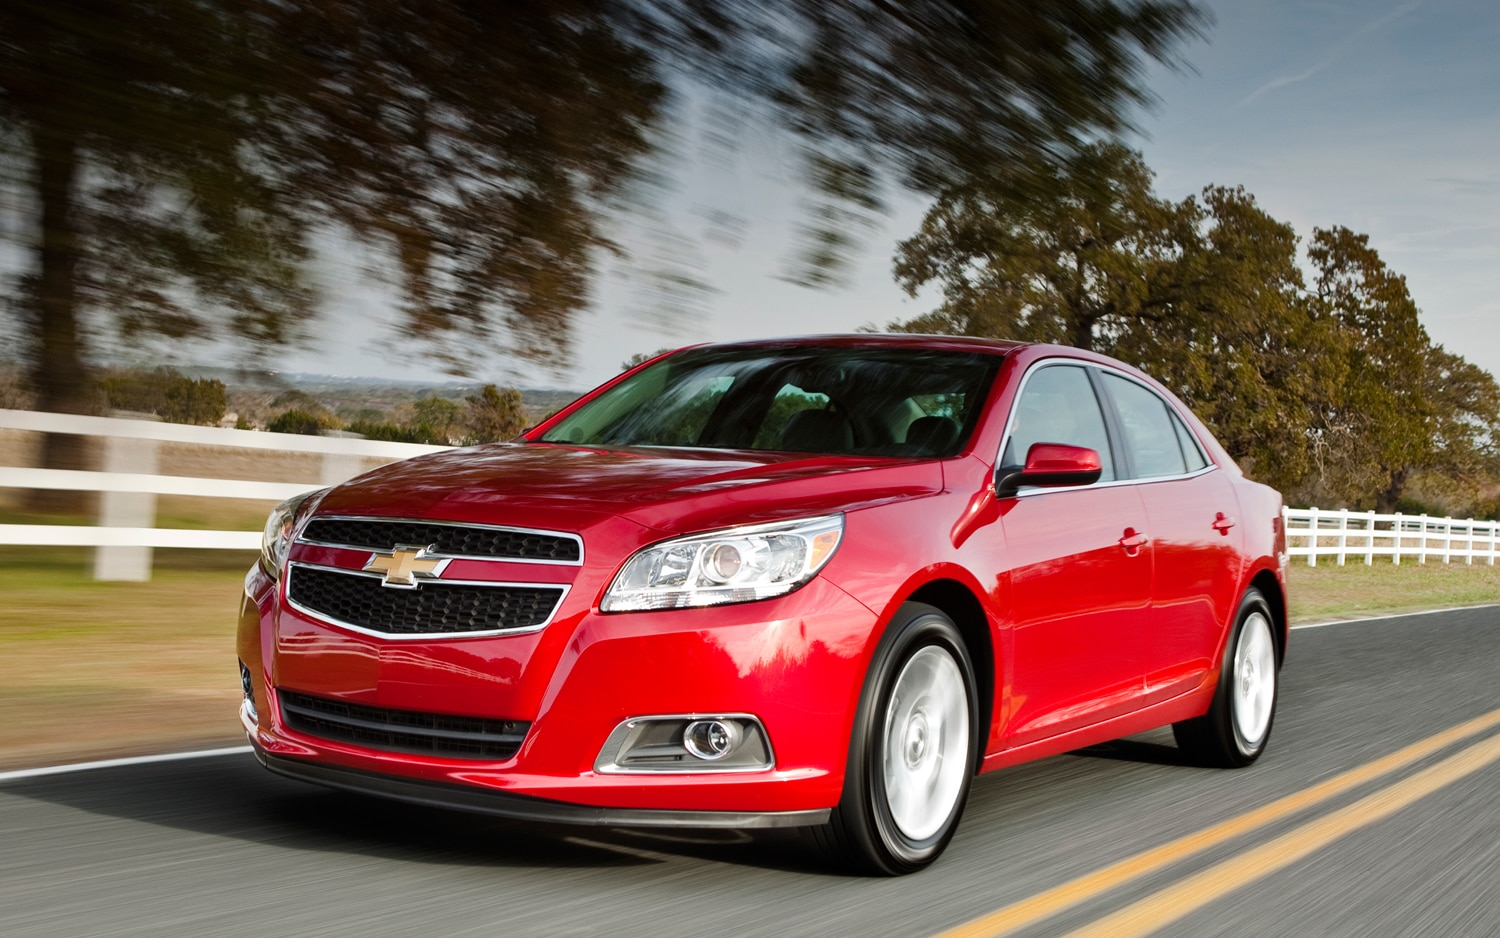 Malibu 2013 chevrolet malibu vin : See How the 2013 Chevrolet Malibu is Made on the Latest Wide Open ...